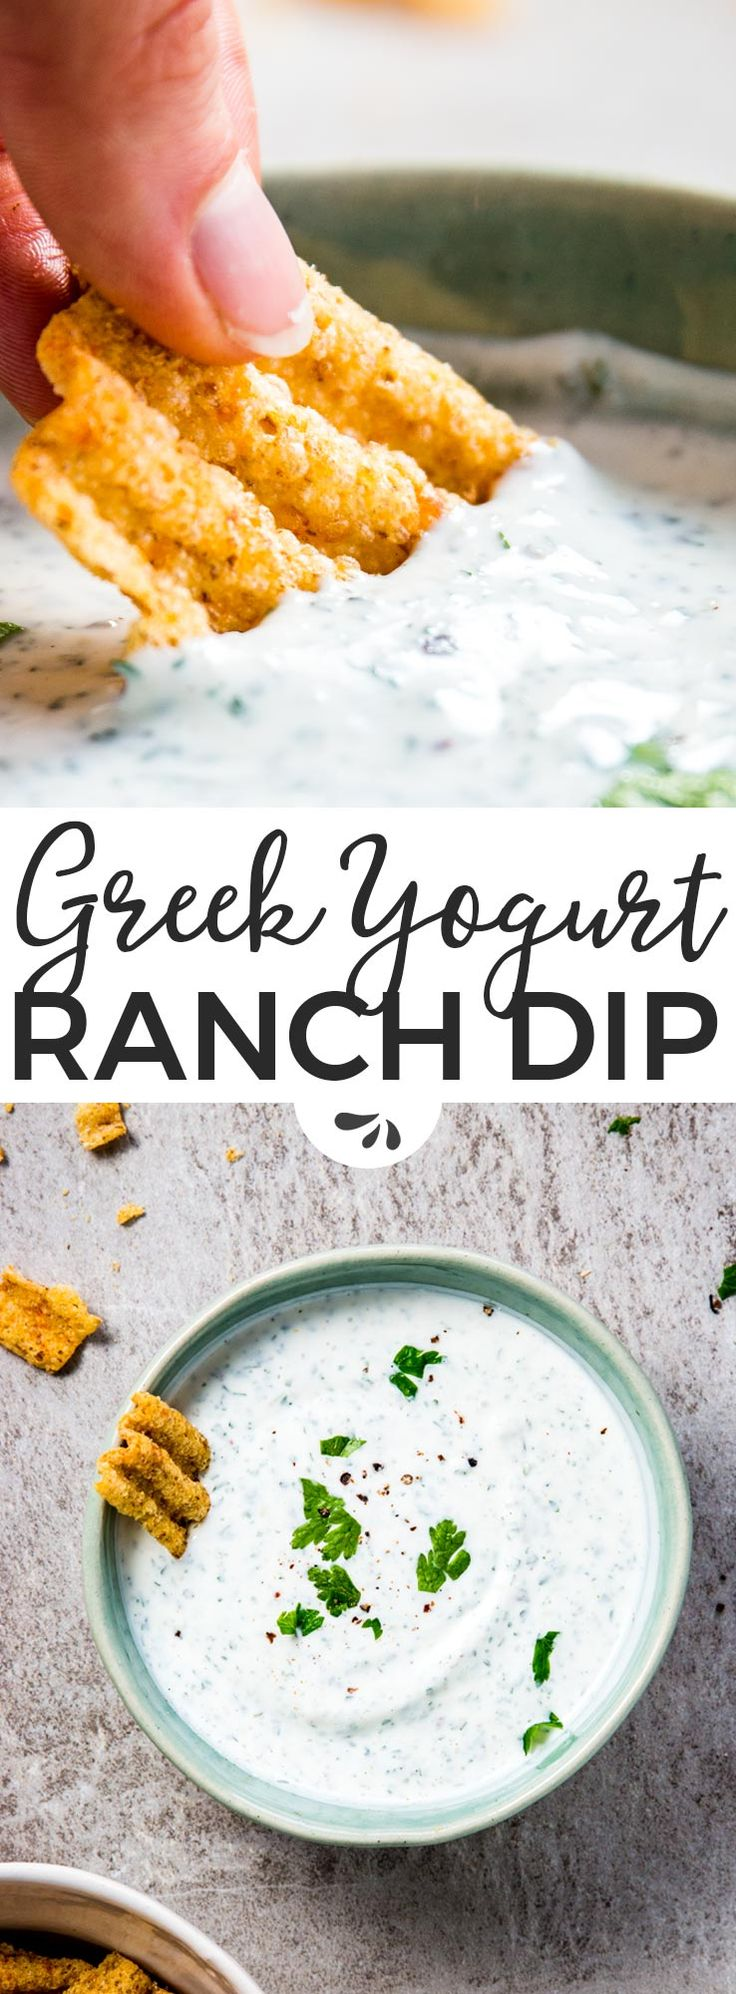 Greek Yogurt Ranch Dip: The easiest Super Bowl food for that moment you realise you promised to bring something to the party... But totally forgot! Just stir together a few basic ingredients and let it sit in the fridge until you're ready to run. The best last minute football party snack idea! | #recipes #food #dip #footballfood #appetizer #easyrecipes